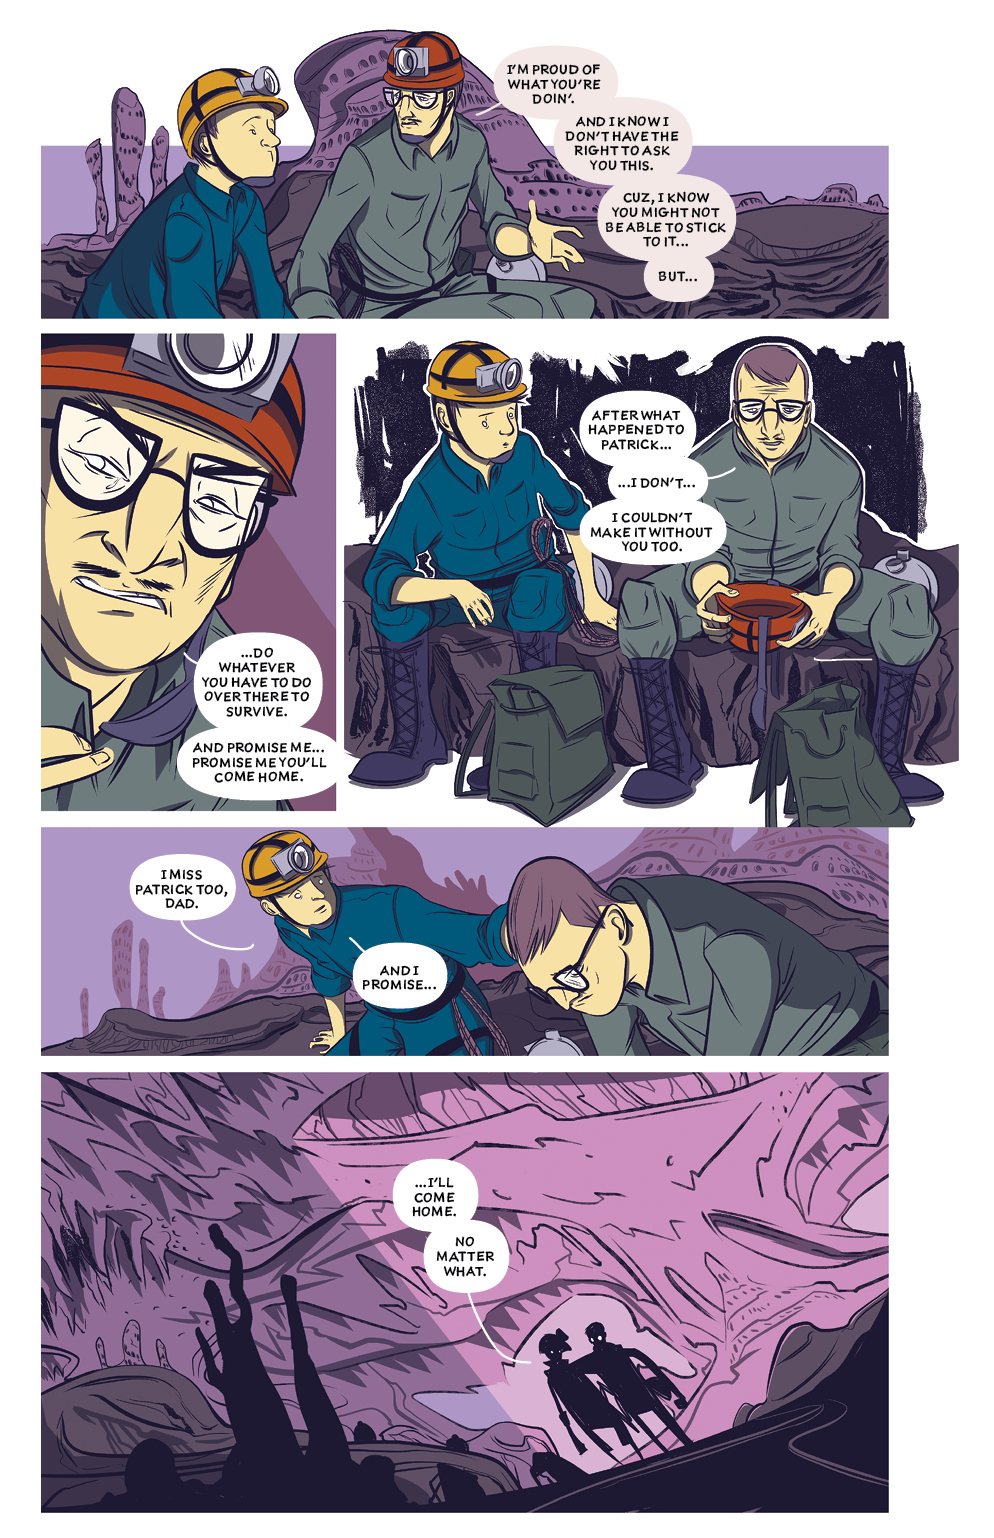 TunnelRat_Issue1_Pg4.jpg